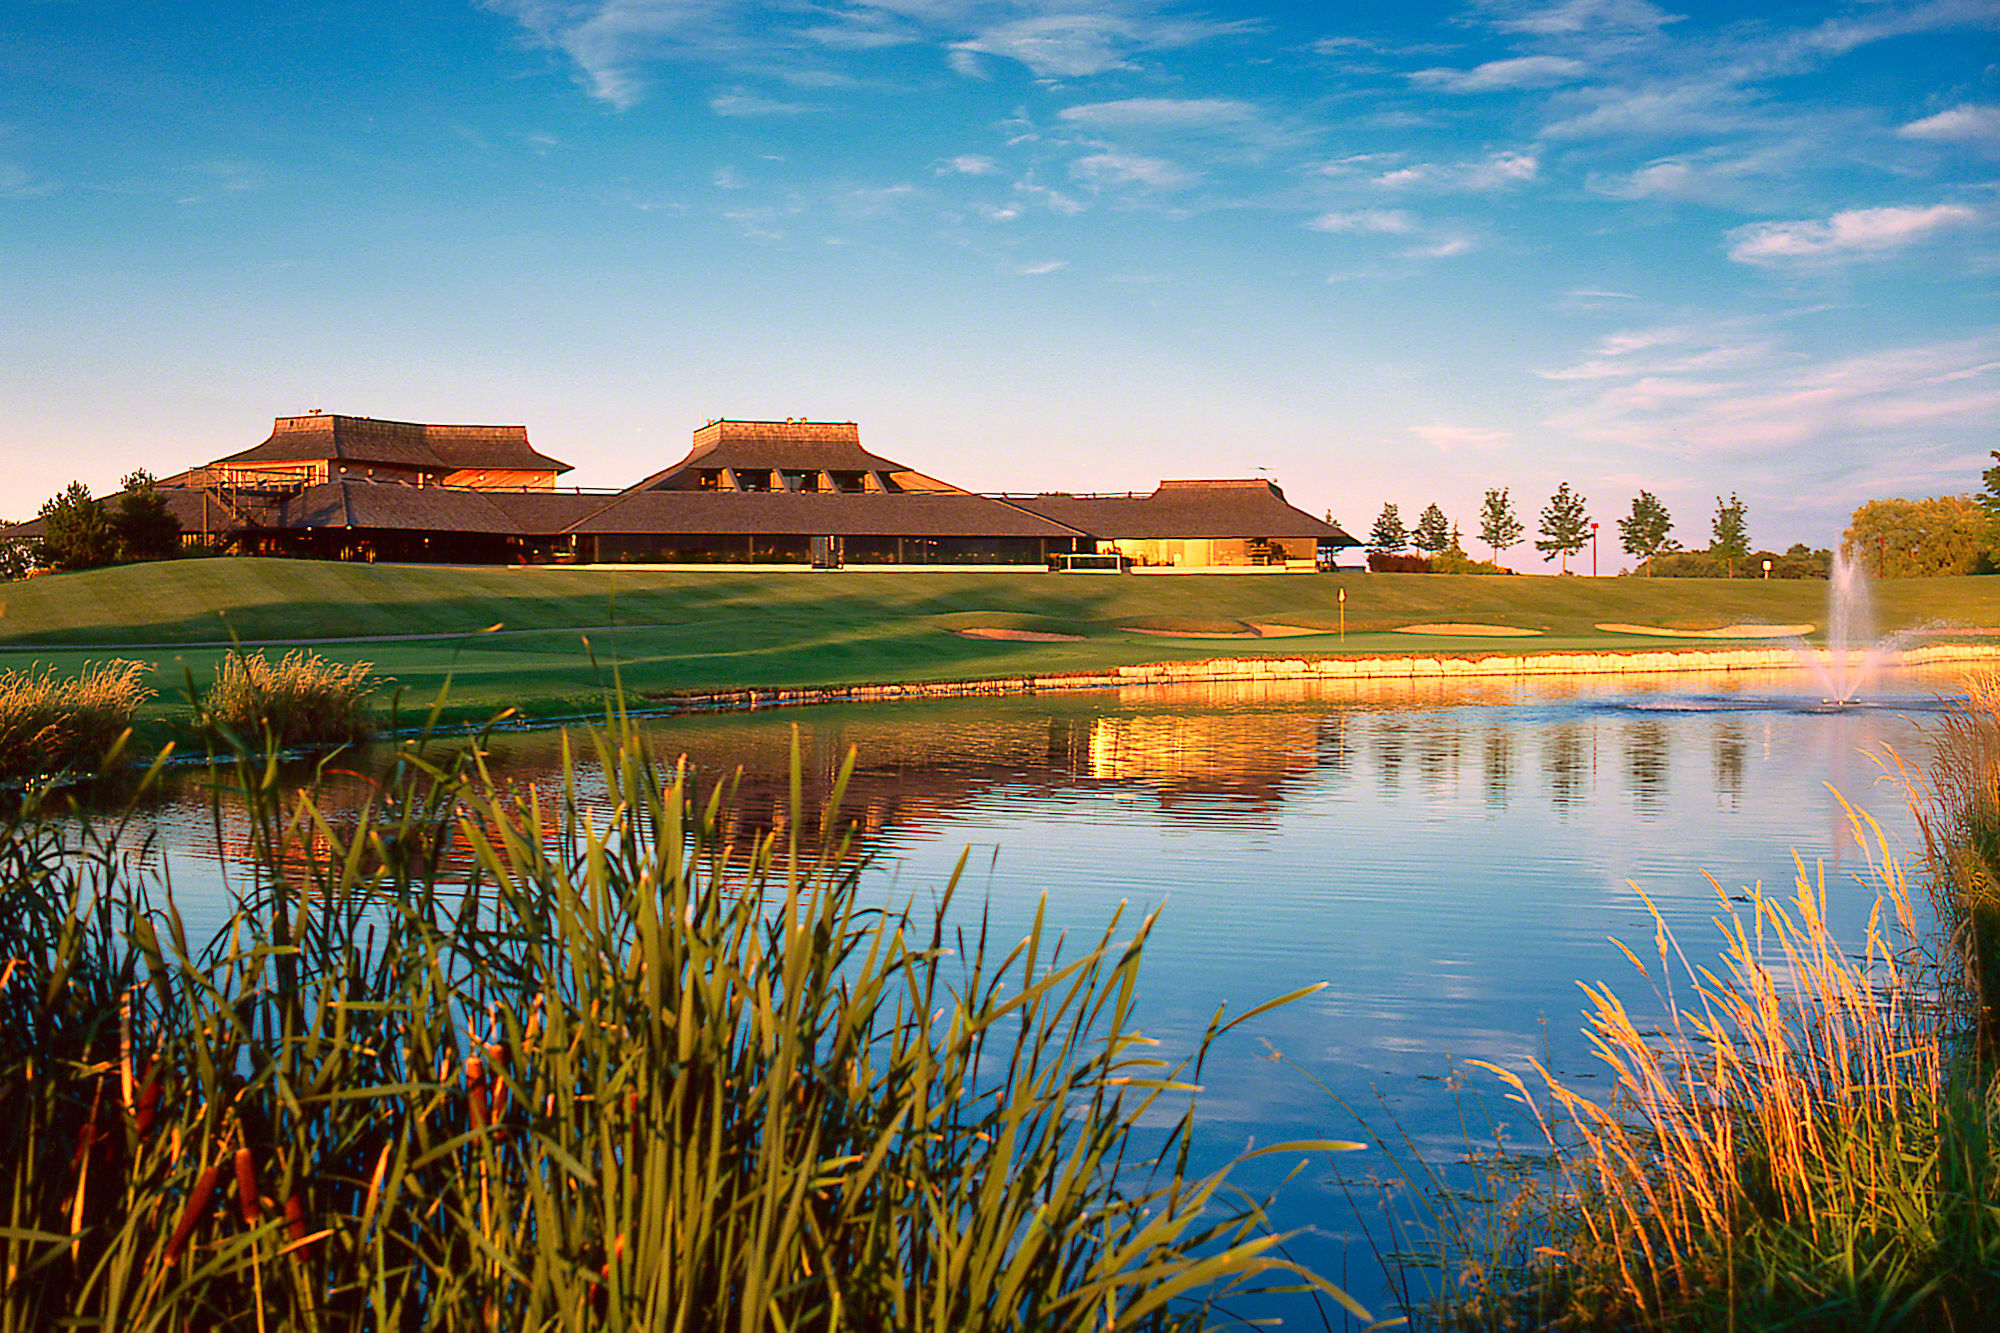 Glen abbey golf club cover picture